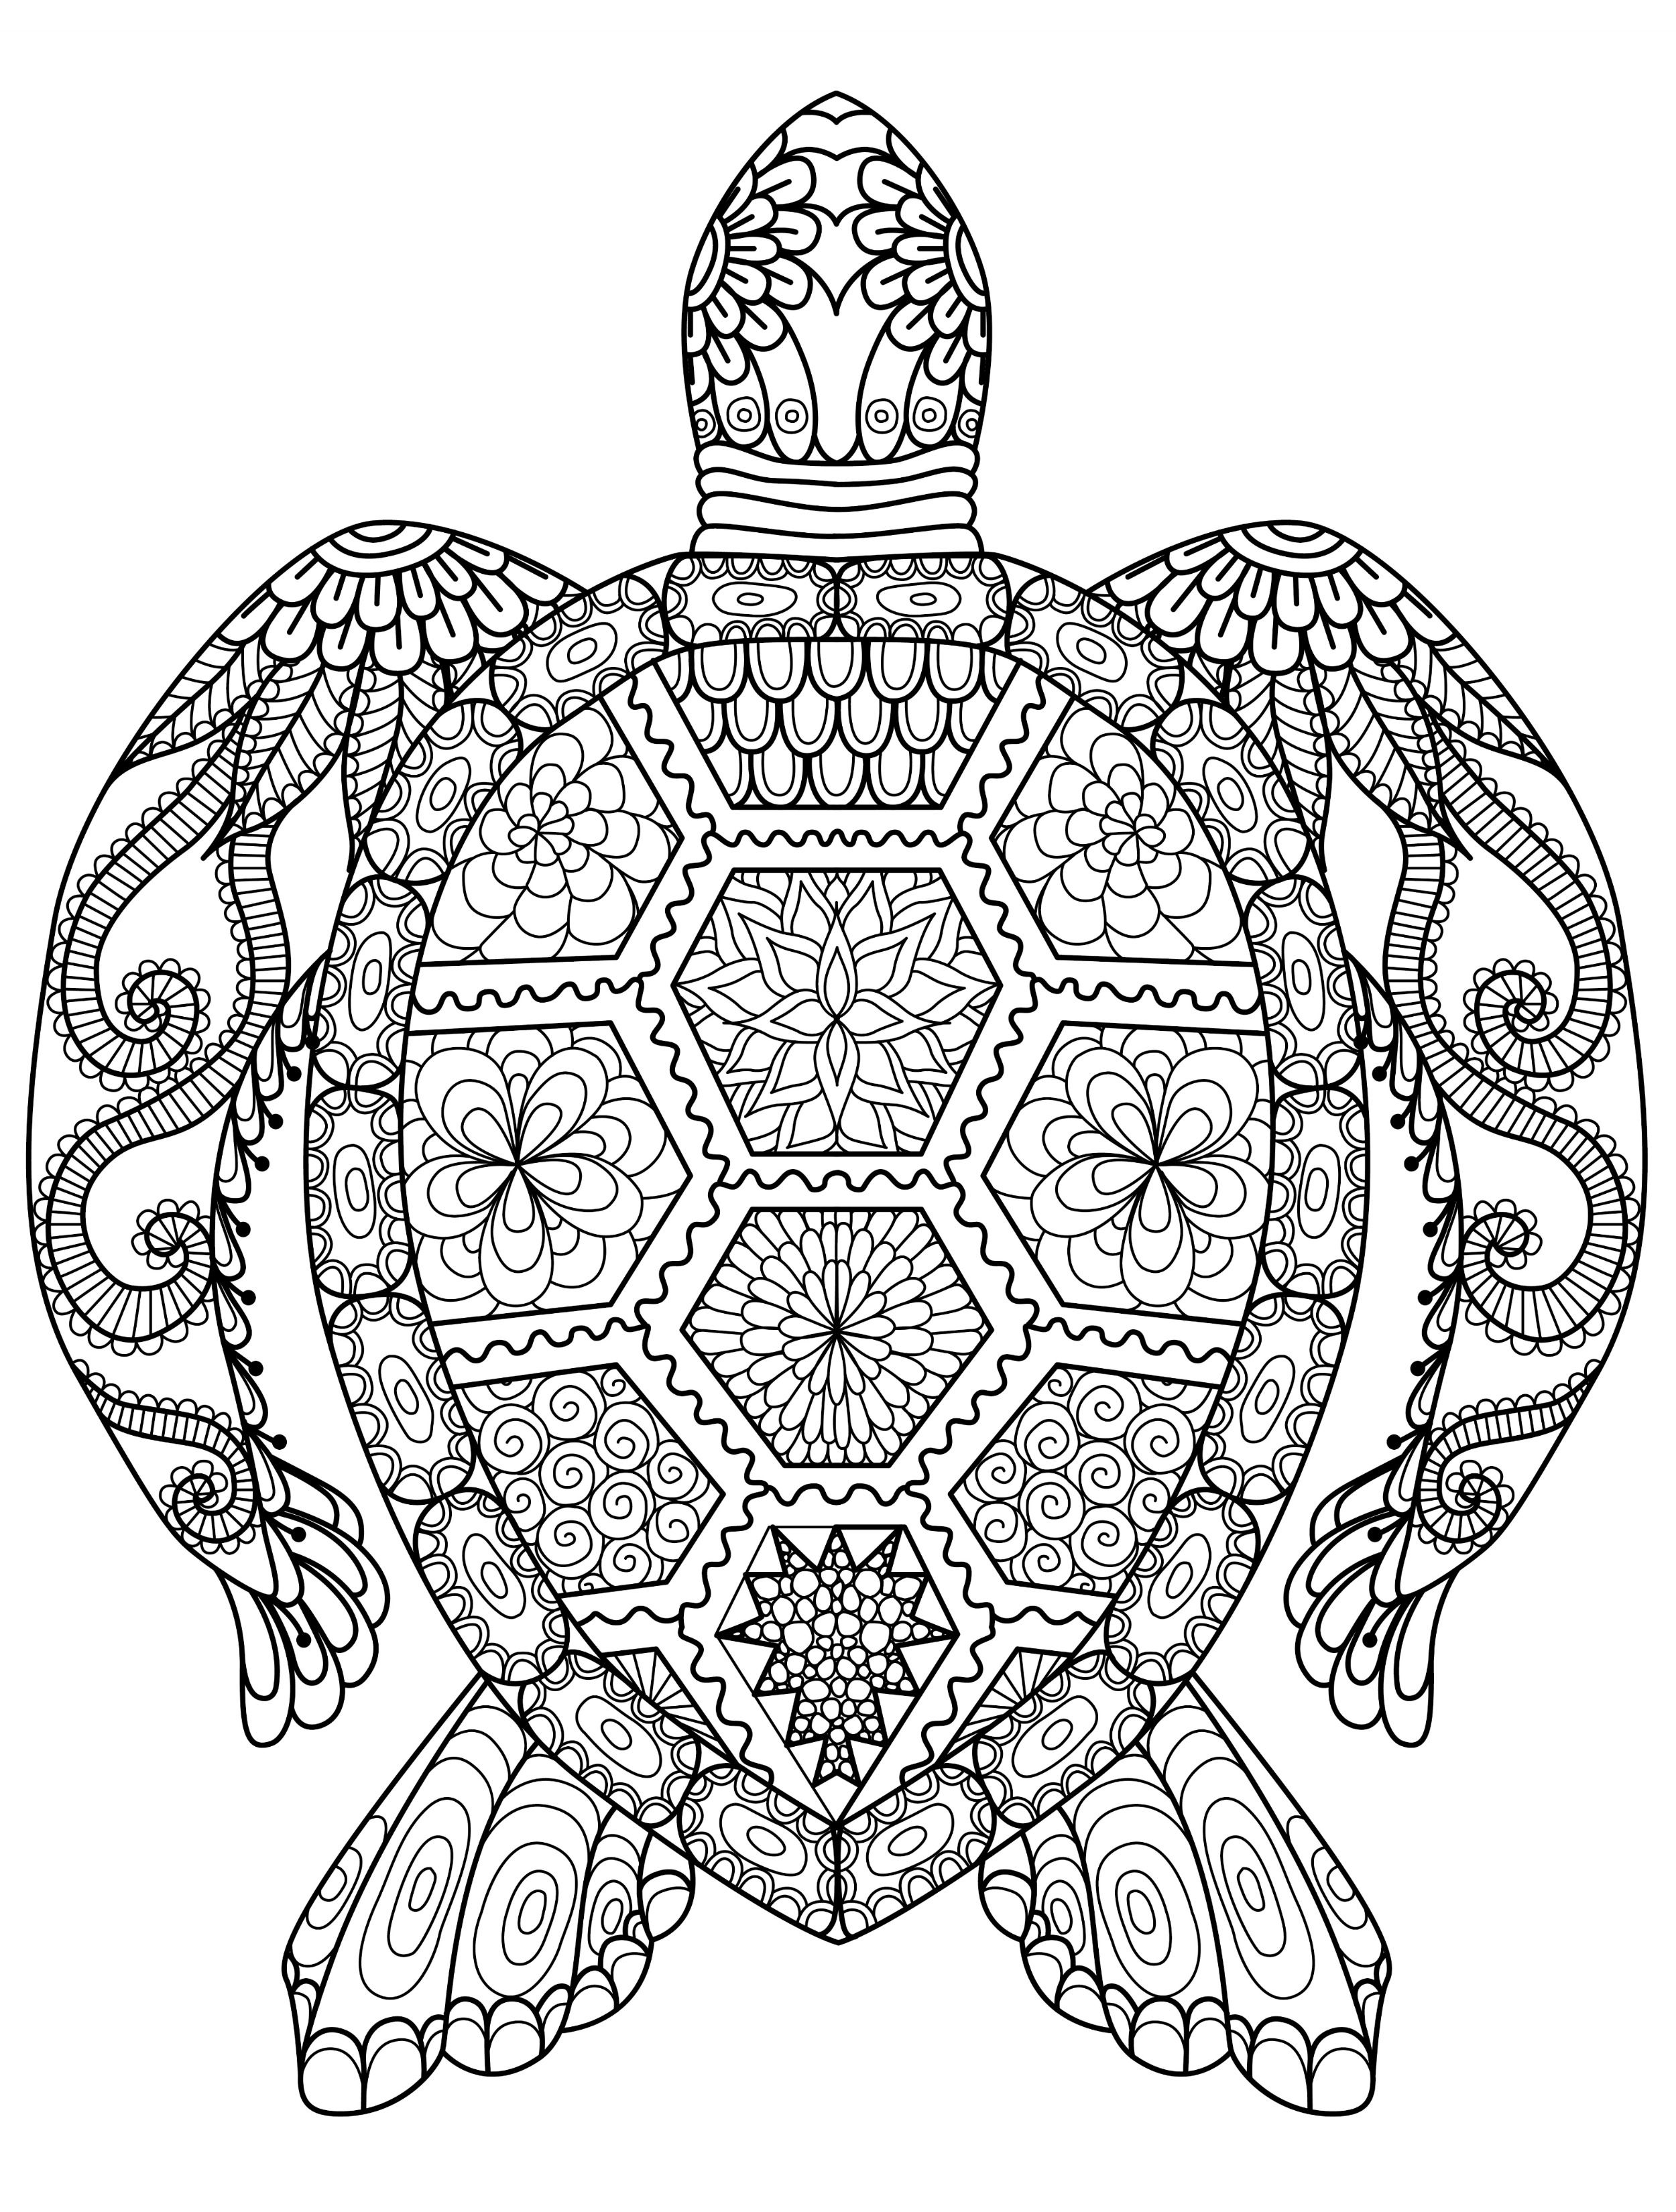 Sea Turtle Coloring Book For Adults Vector Illustration Anti